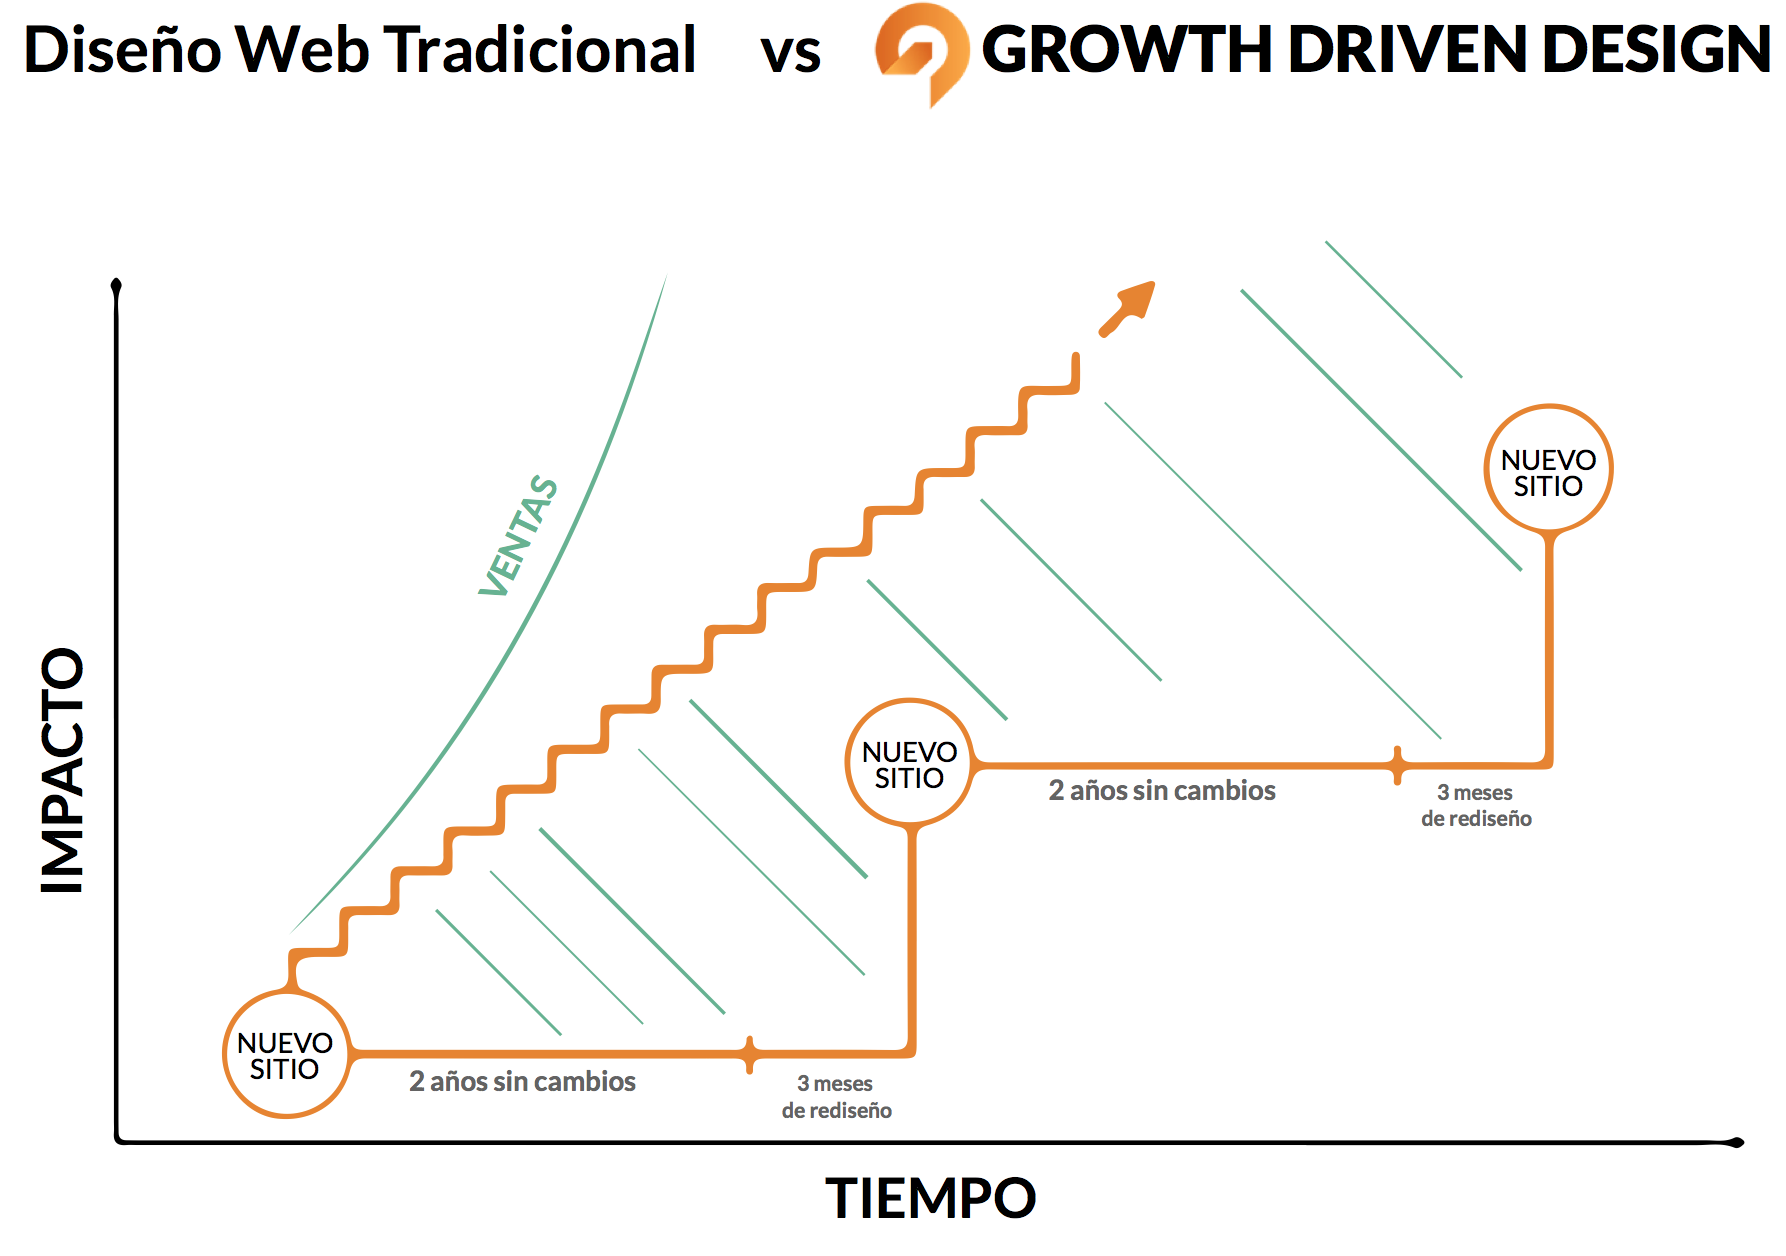 Web Design Focused on Growth vs Traditional Web Pages